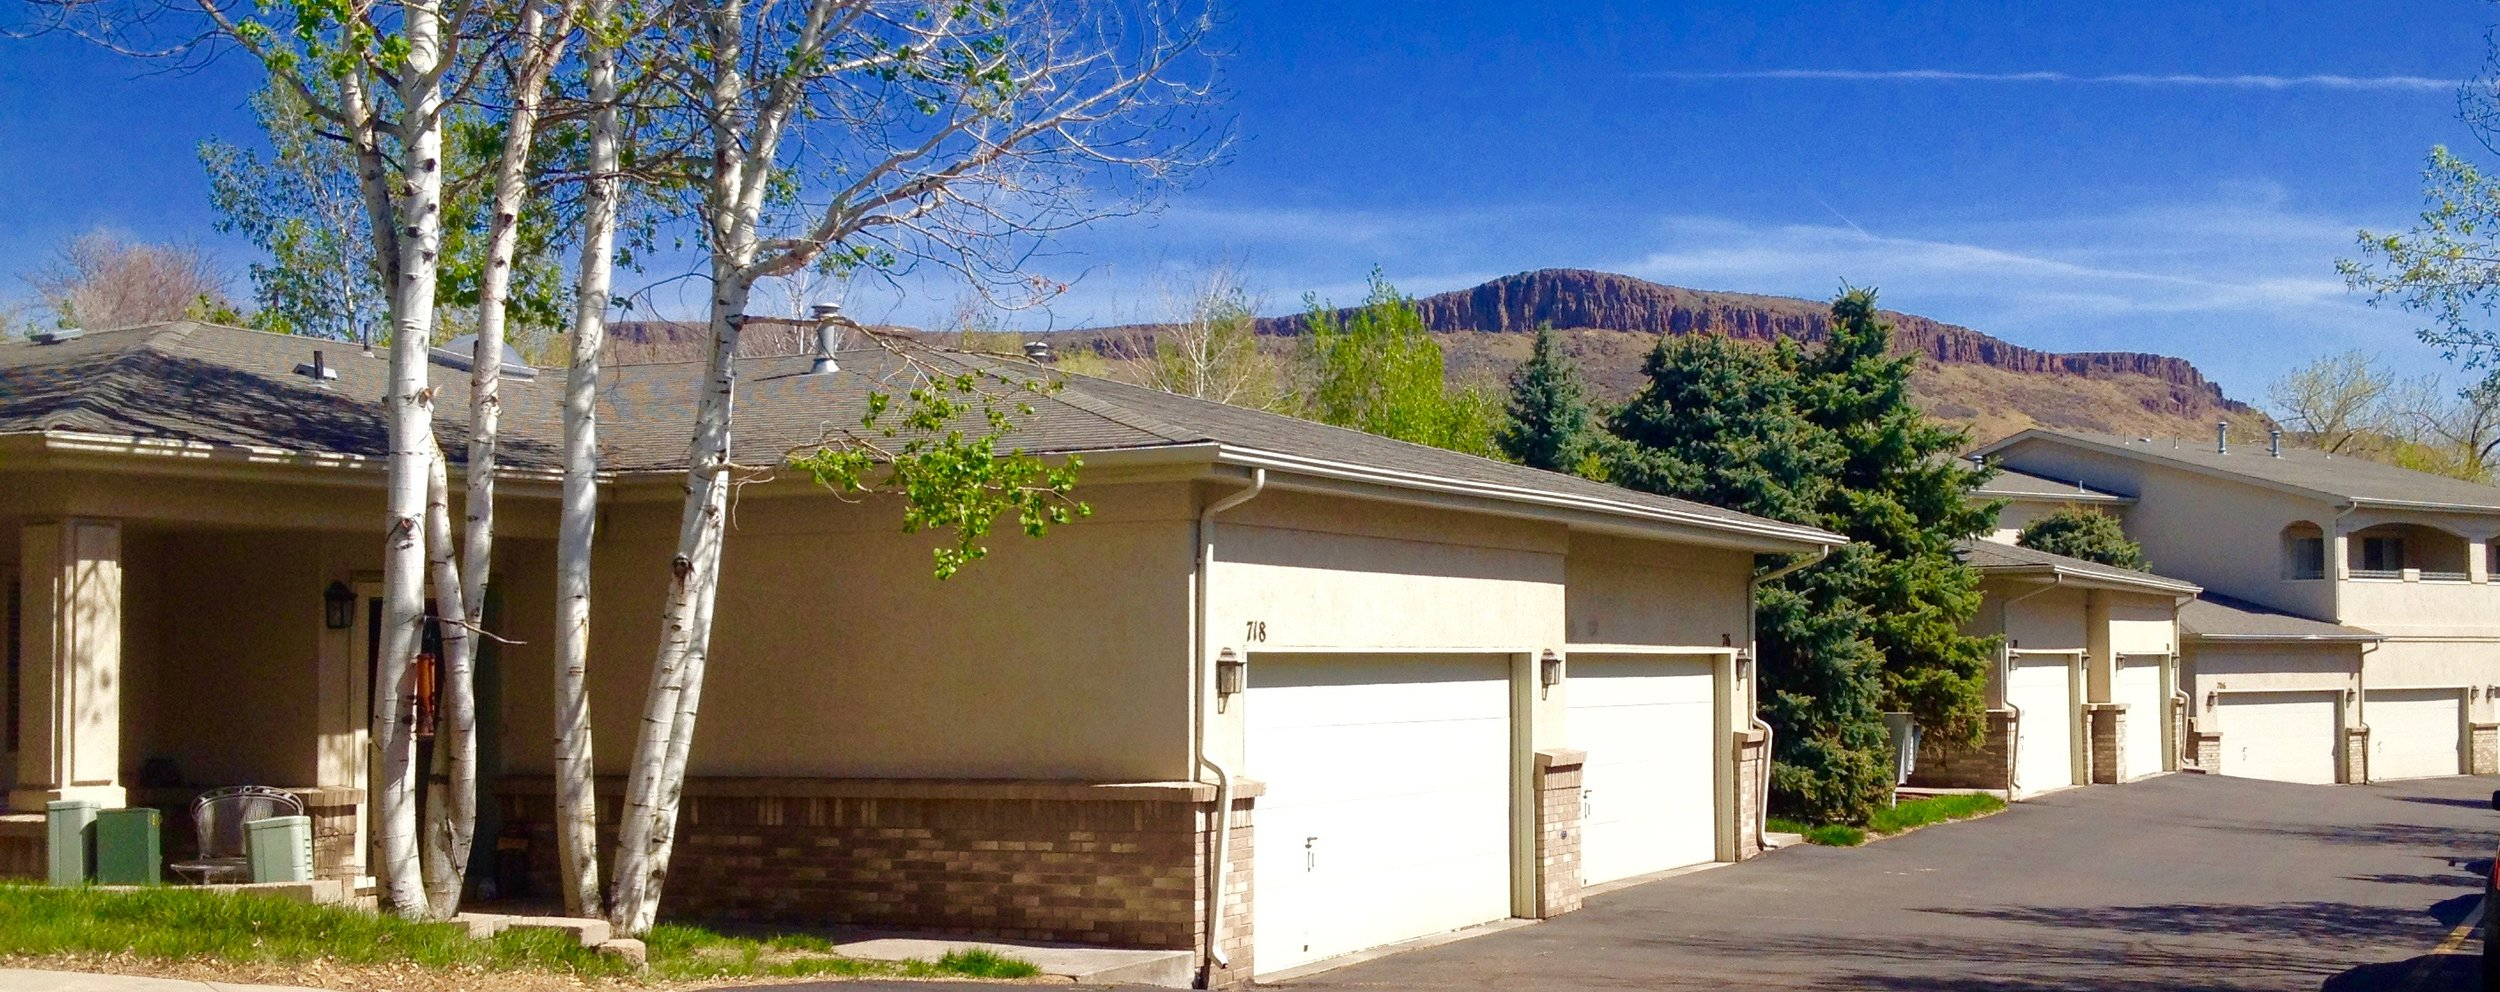 Briarwood Commons Townhomes are within walking distance to shops and restaurants in downtown Golden, Colorado